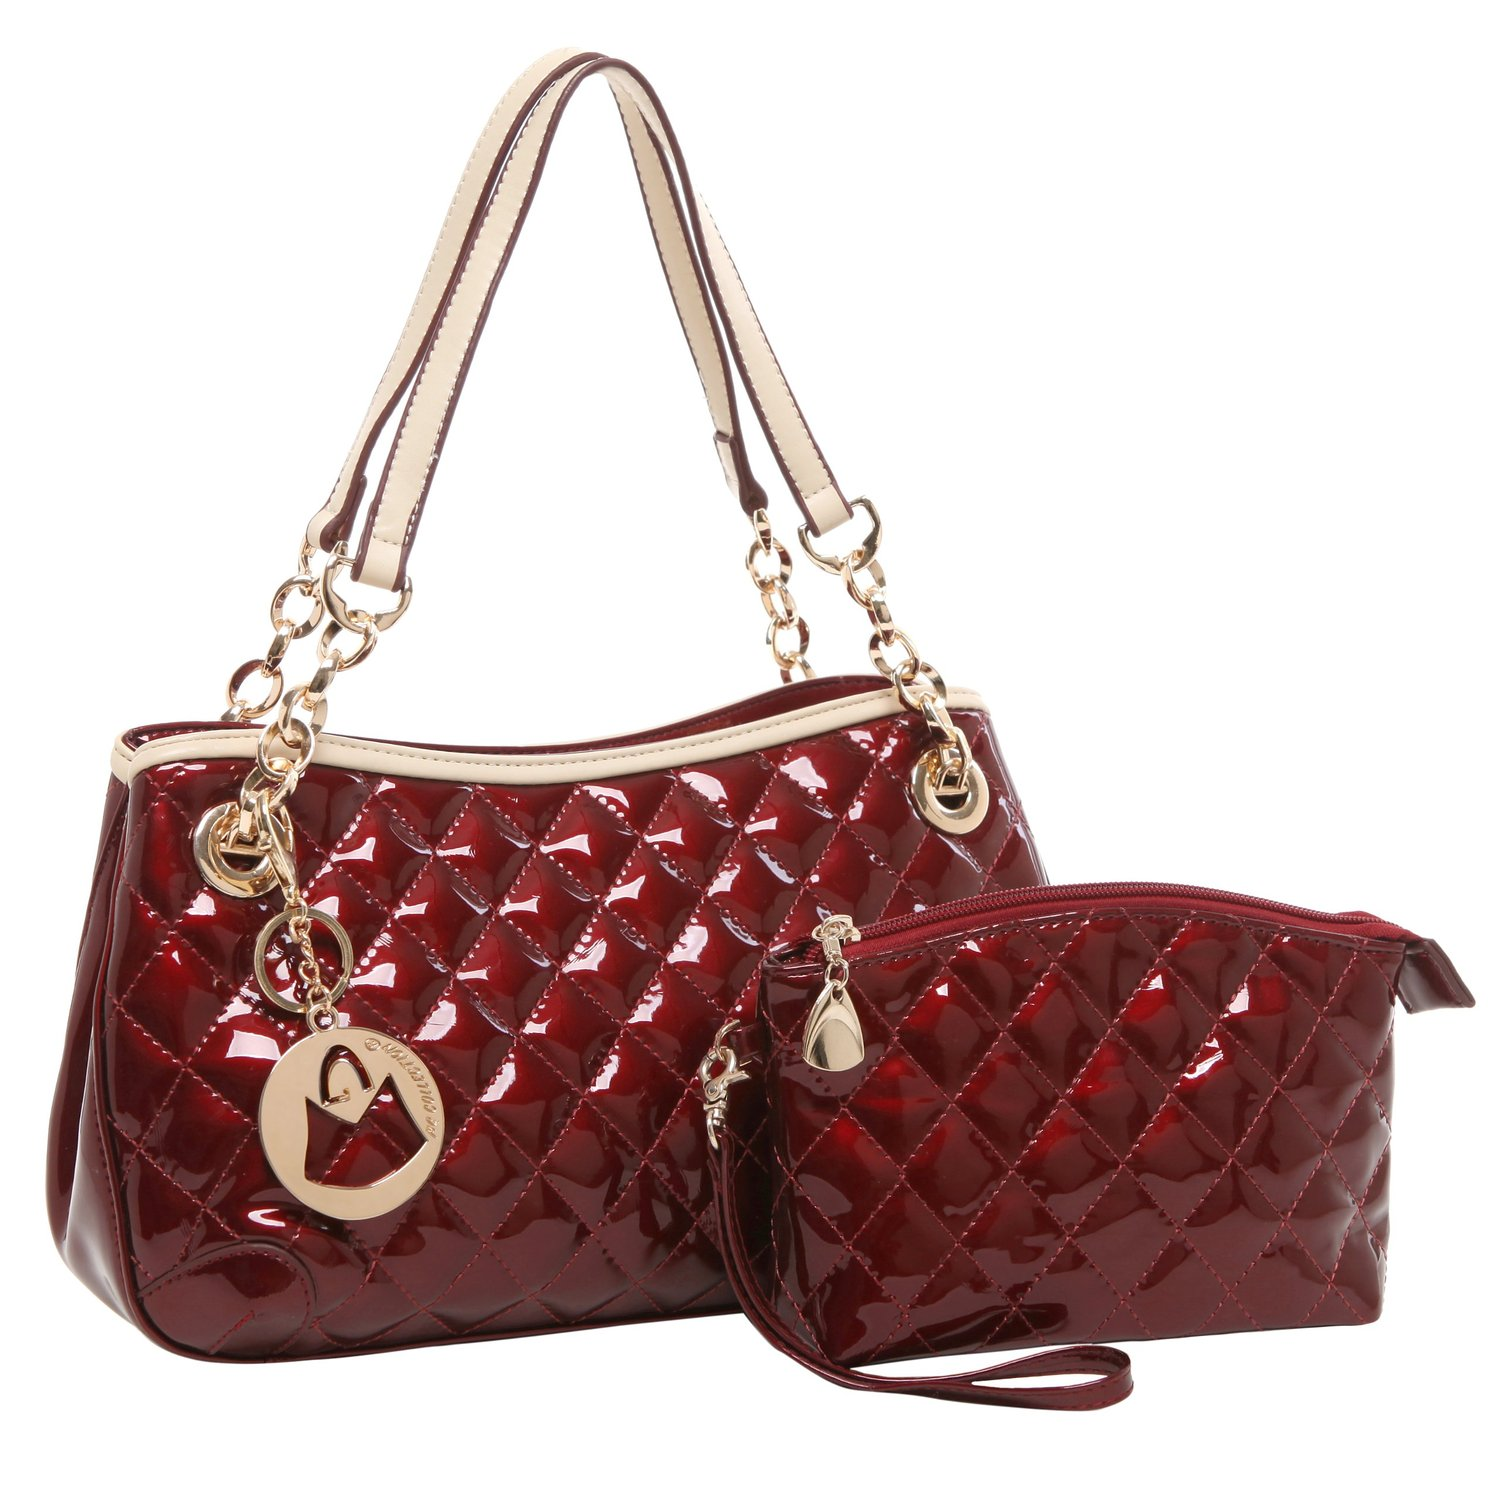 MG Collection ELISE 2 in 1 Stylish Quilted Faux Patent